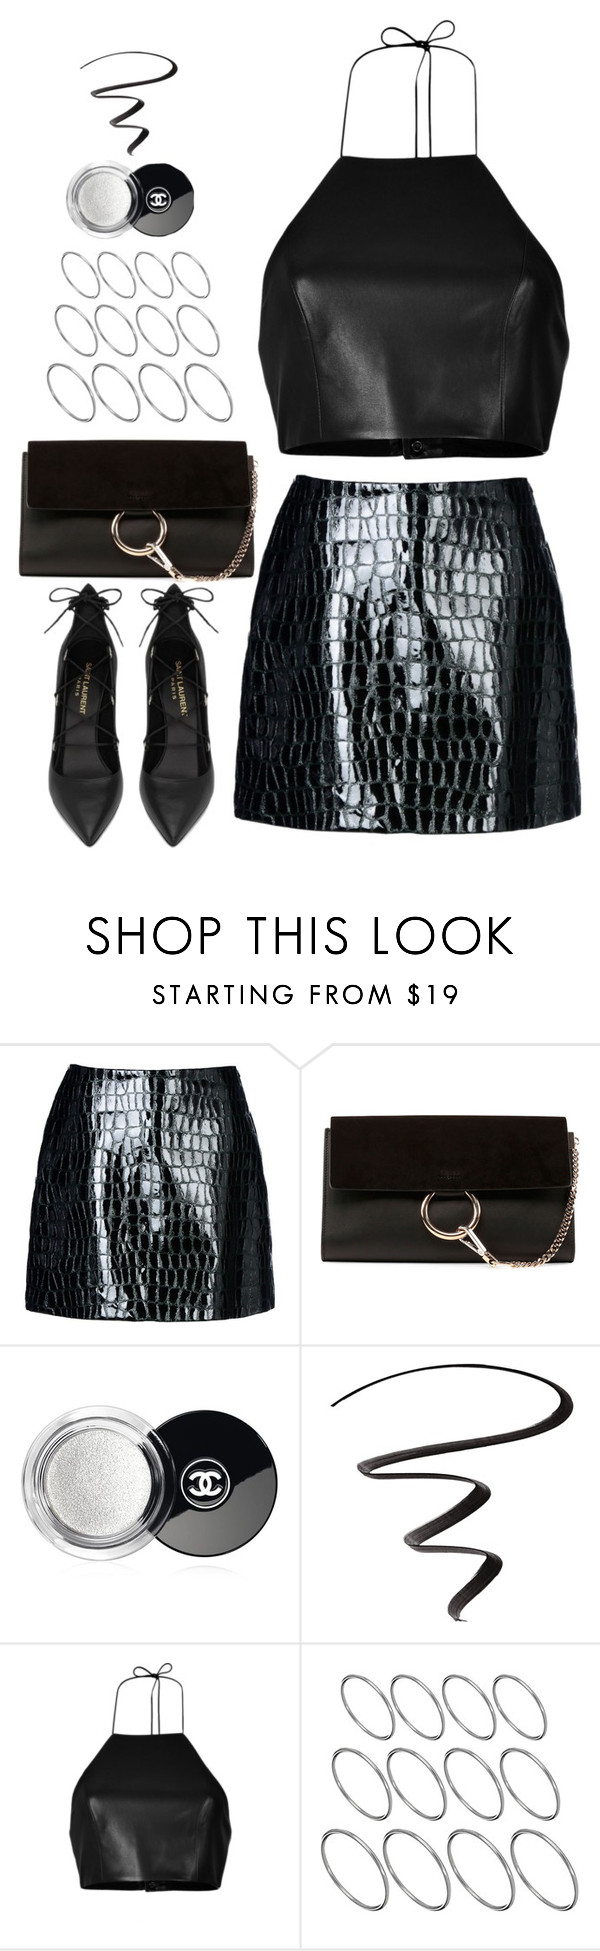 """Untitled#4483"" by fashionnfacts ❤ liked on Polyvore featuring Jolie By Edward Spiers, Yves Saint Laurent, Chloé, Chanel, L'Oréal Paris, rag & bone and ASOS"